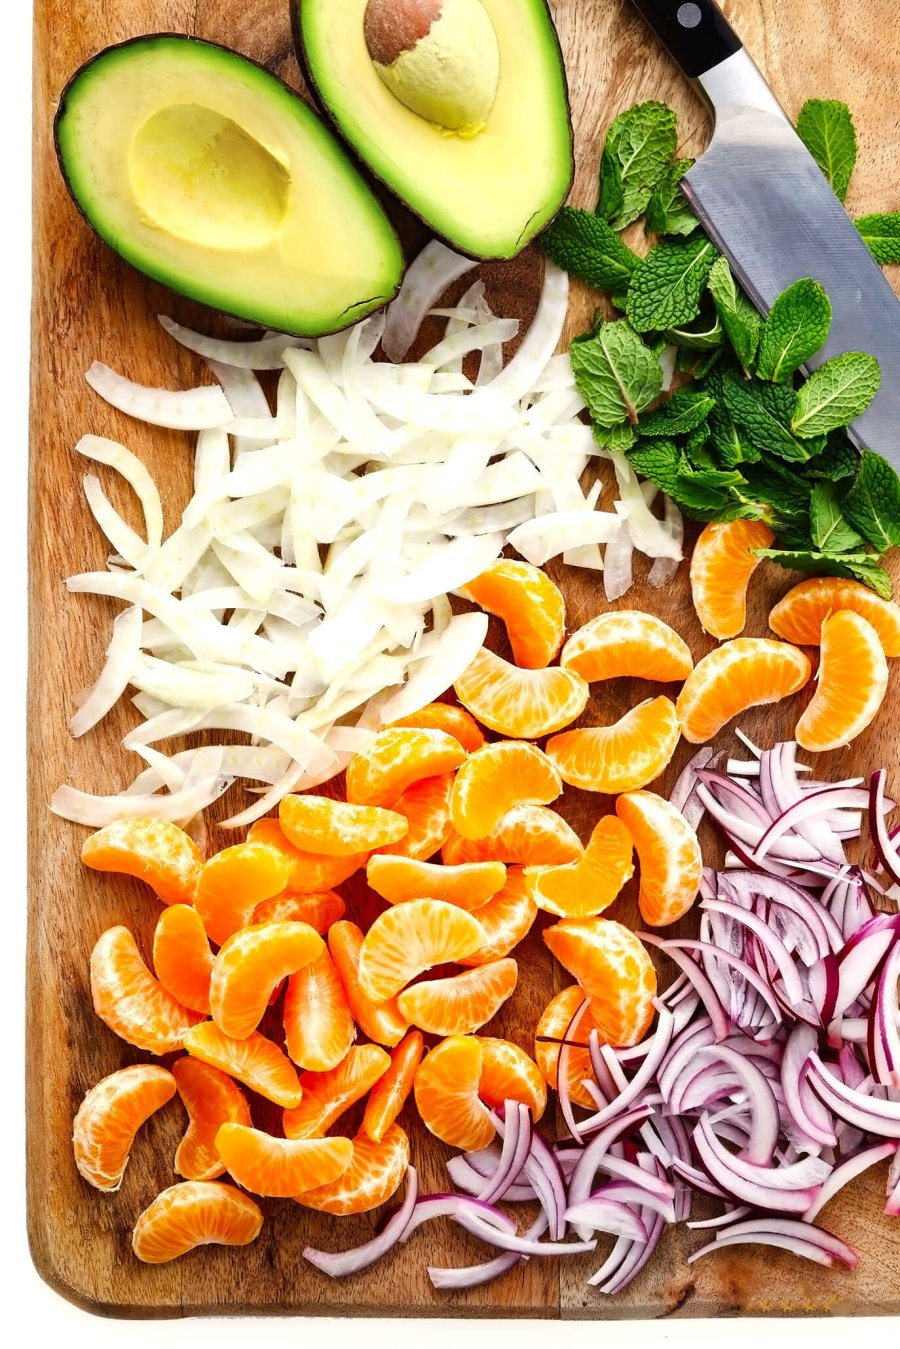 Cutting board with fresh avocado, fennel, red onion, mint and clementine oranges